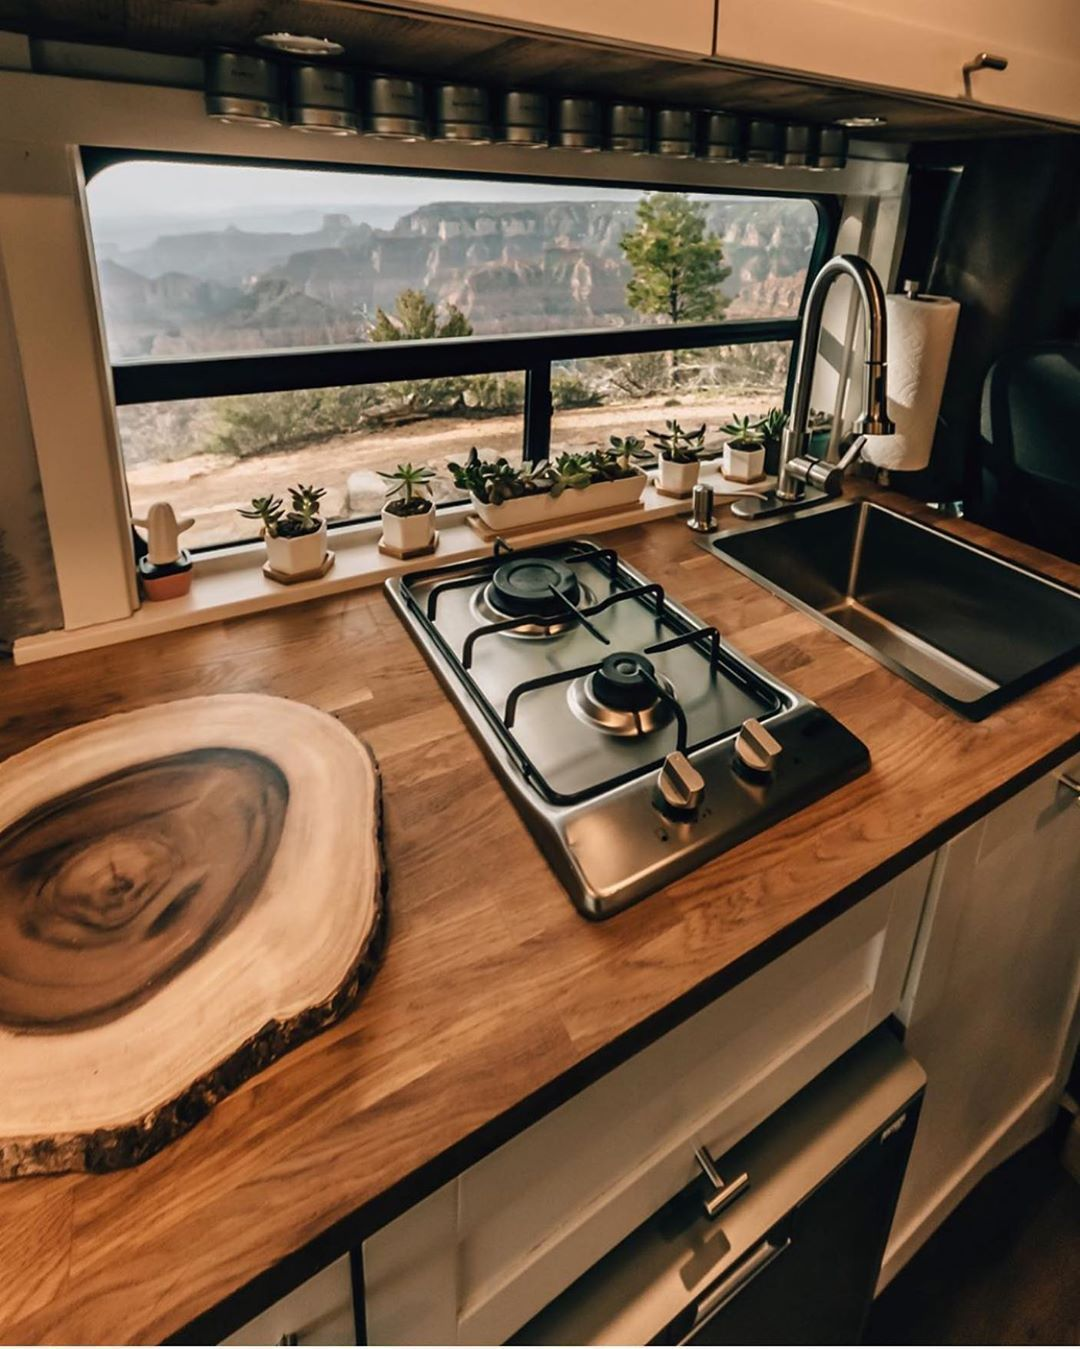 "Photo of Van Conversion Company on Instagram: """"Everything + the kitchen sink?"" And…"